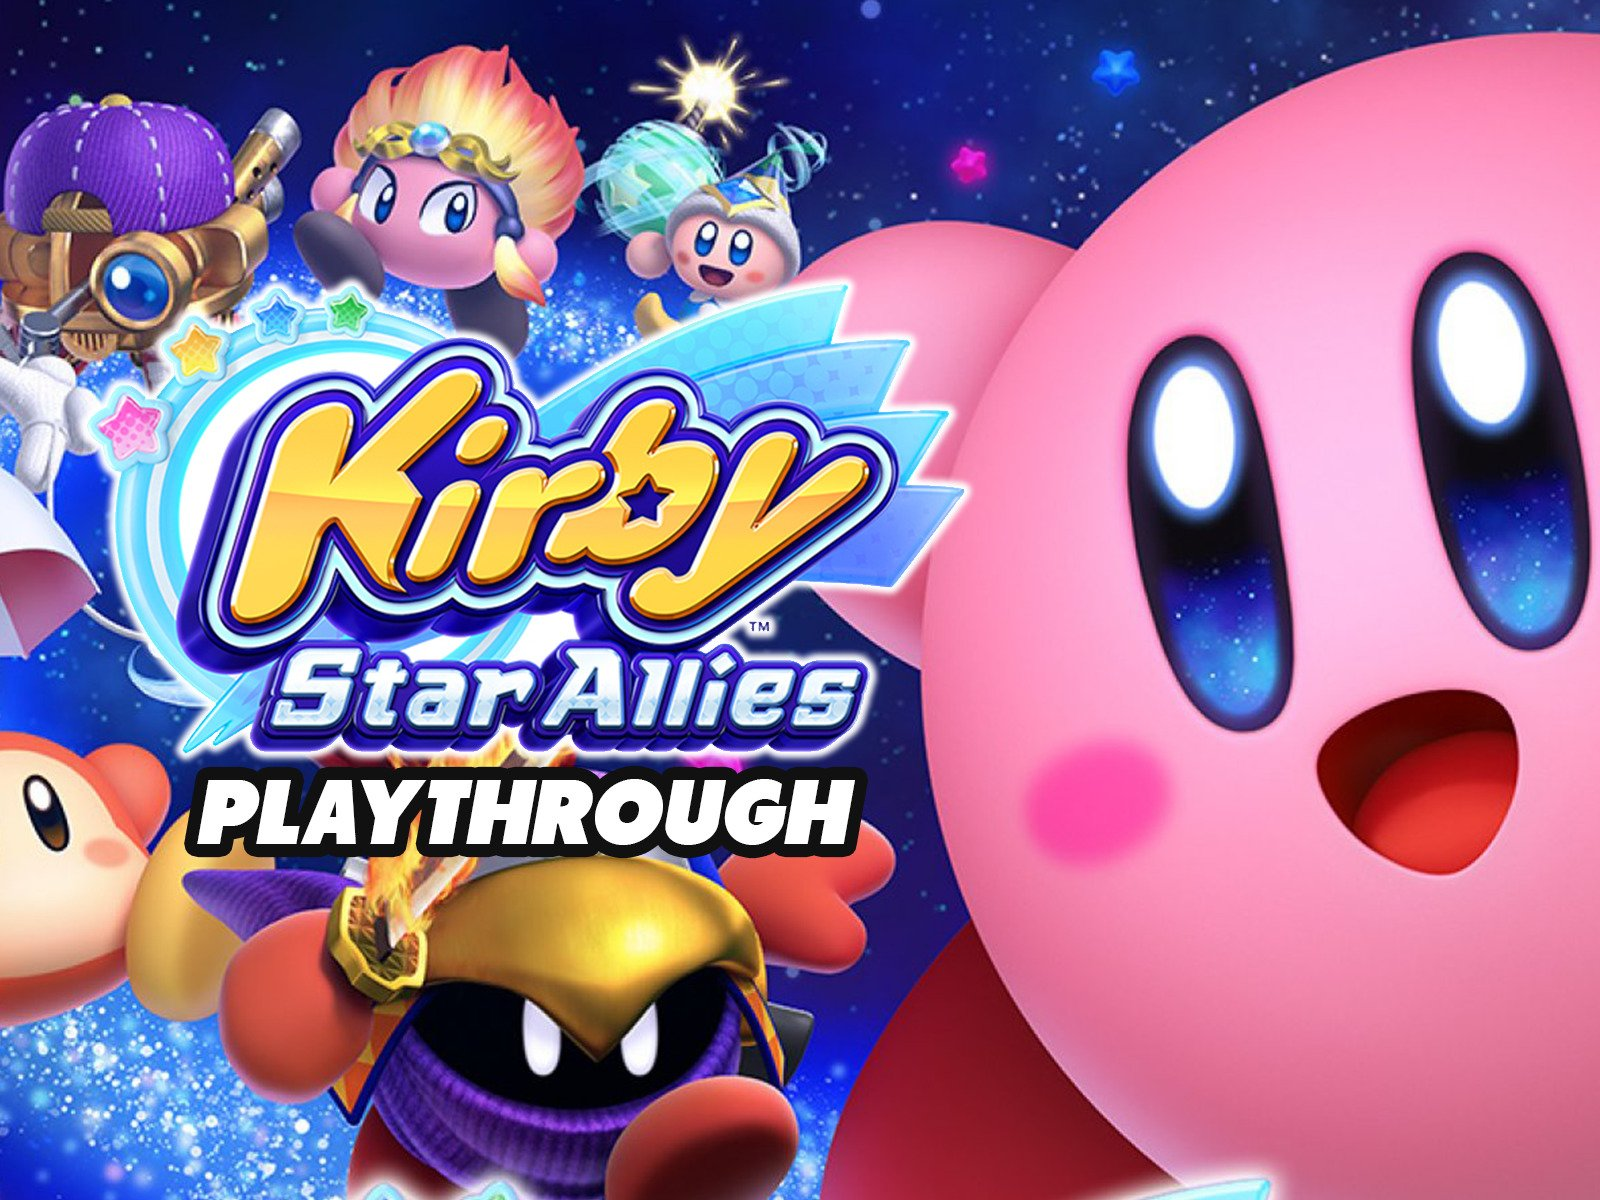 Clip: Kirby Star Allies Playthrough - Season 1